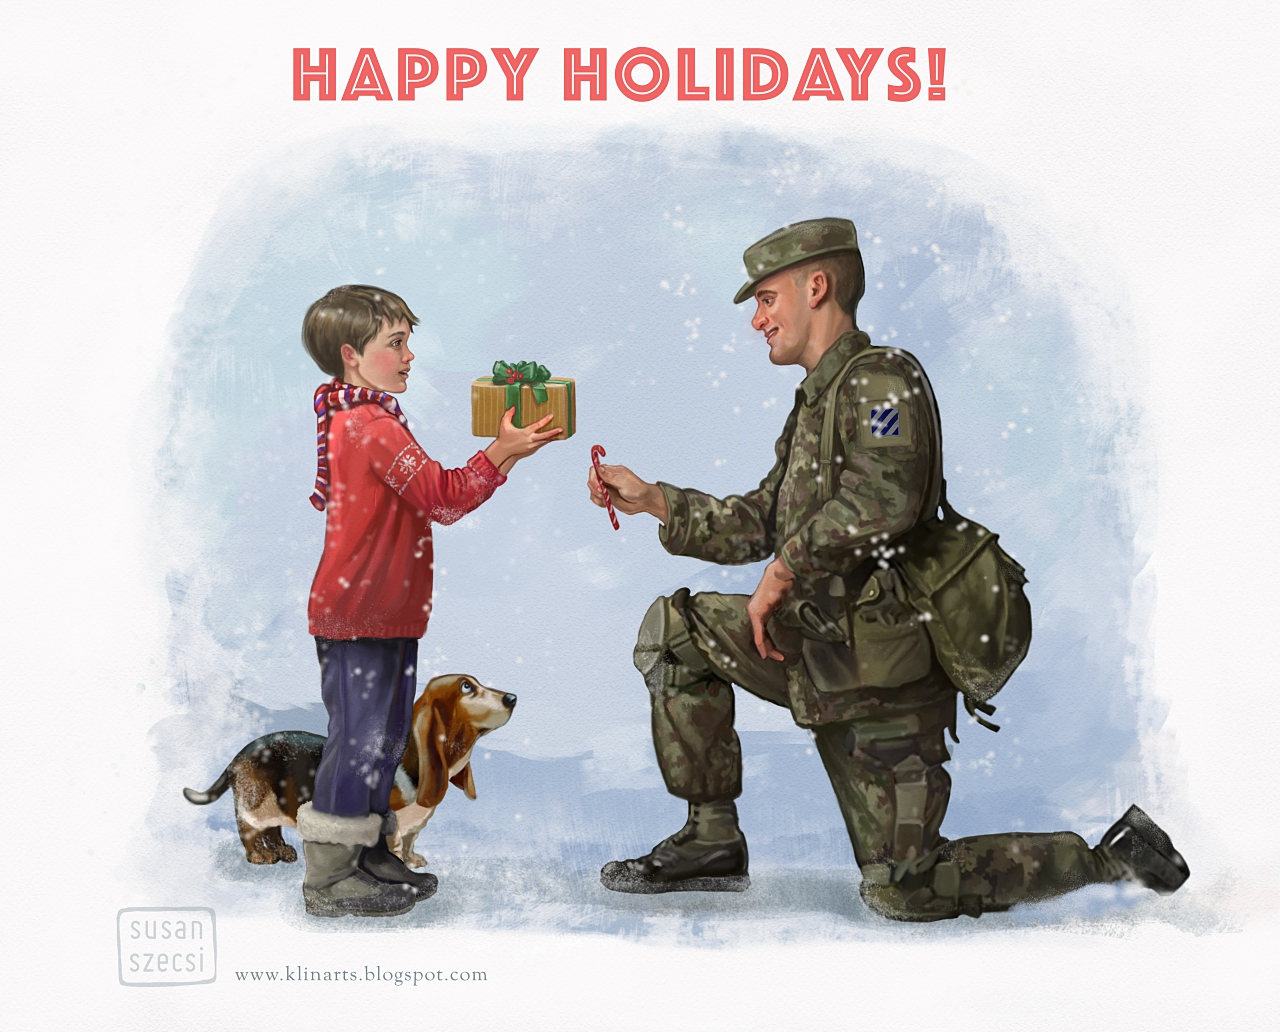 klinarts: Hommage to Norman Rockwell and Happy Holidays!